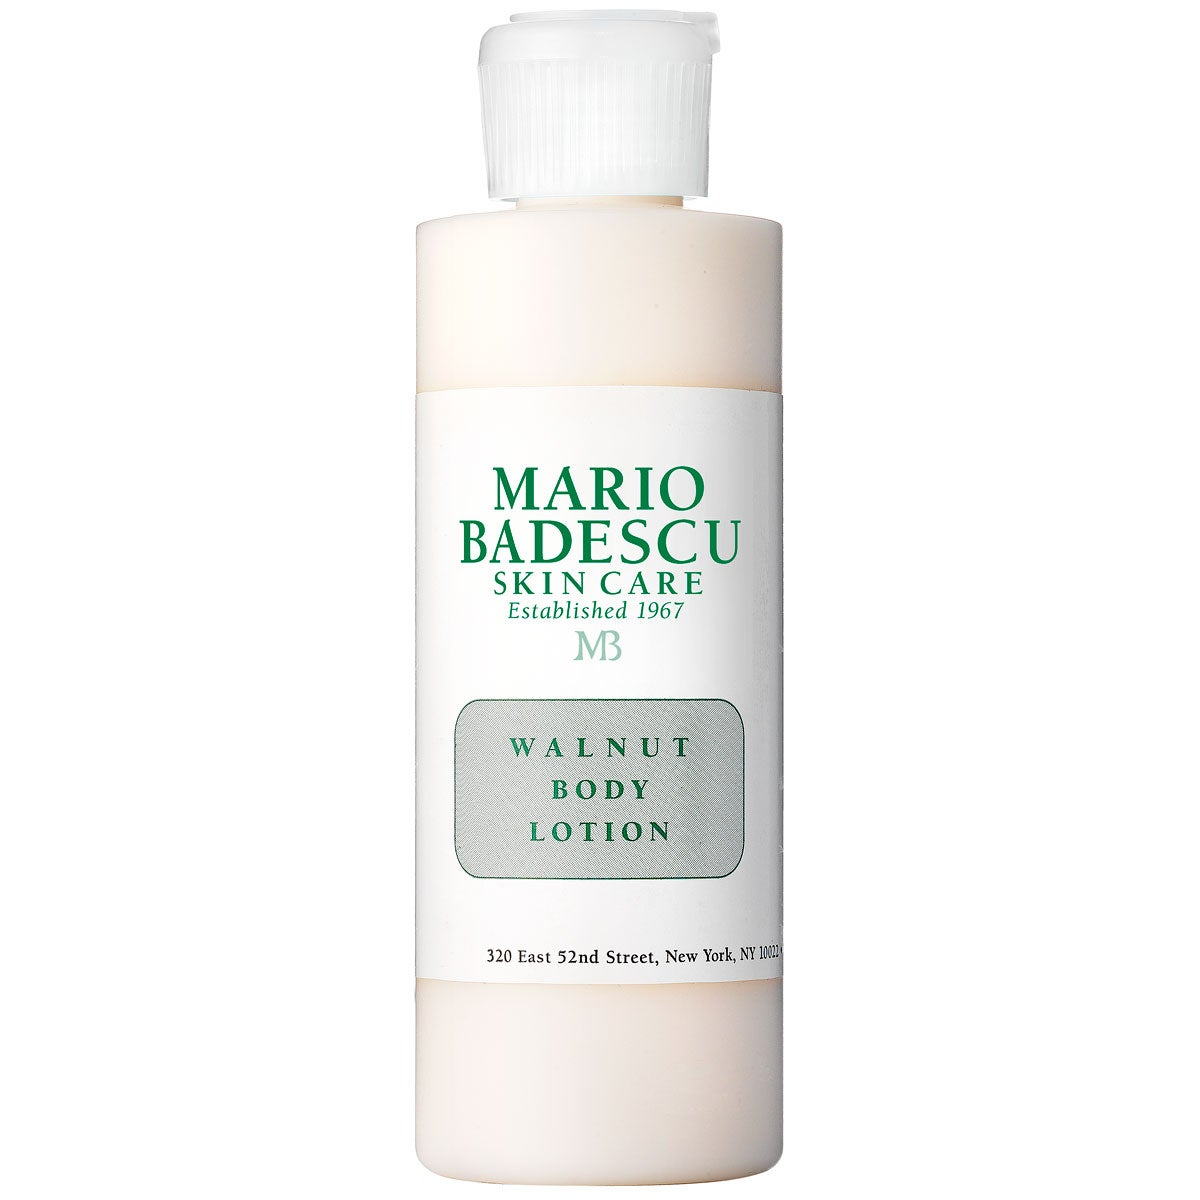 Mario Badescu Walnut Body Lotion